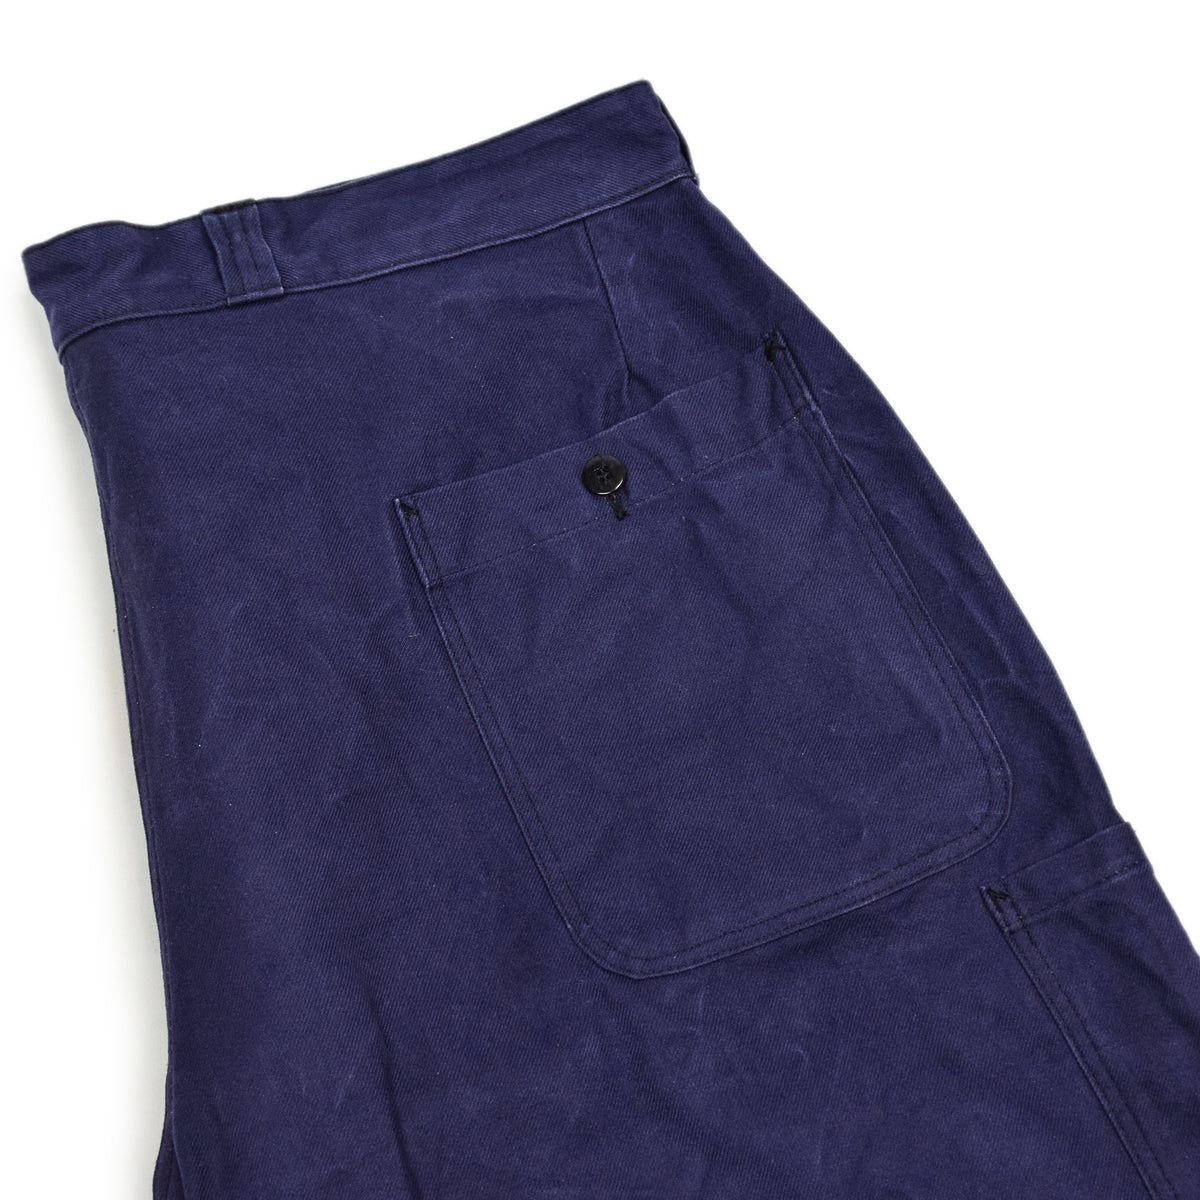 Vintage Indigo Blue French Work Pant Utility Trousers Made in France 38 W 30 L back pocket